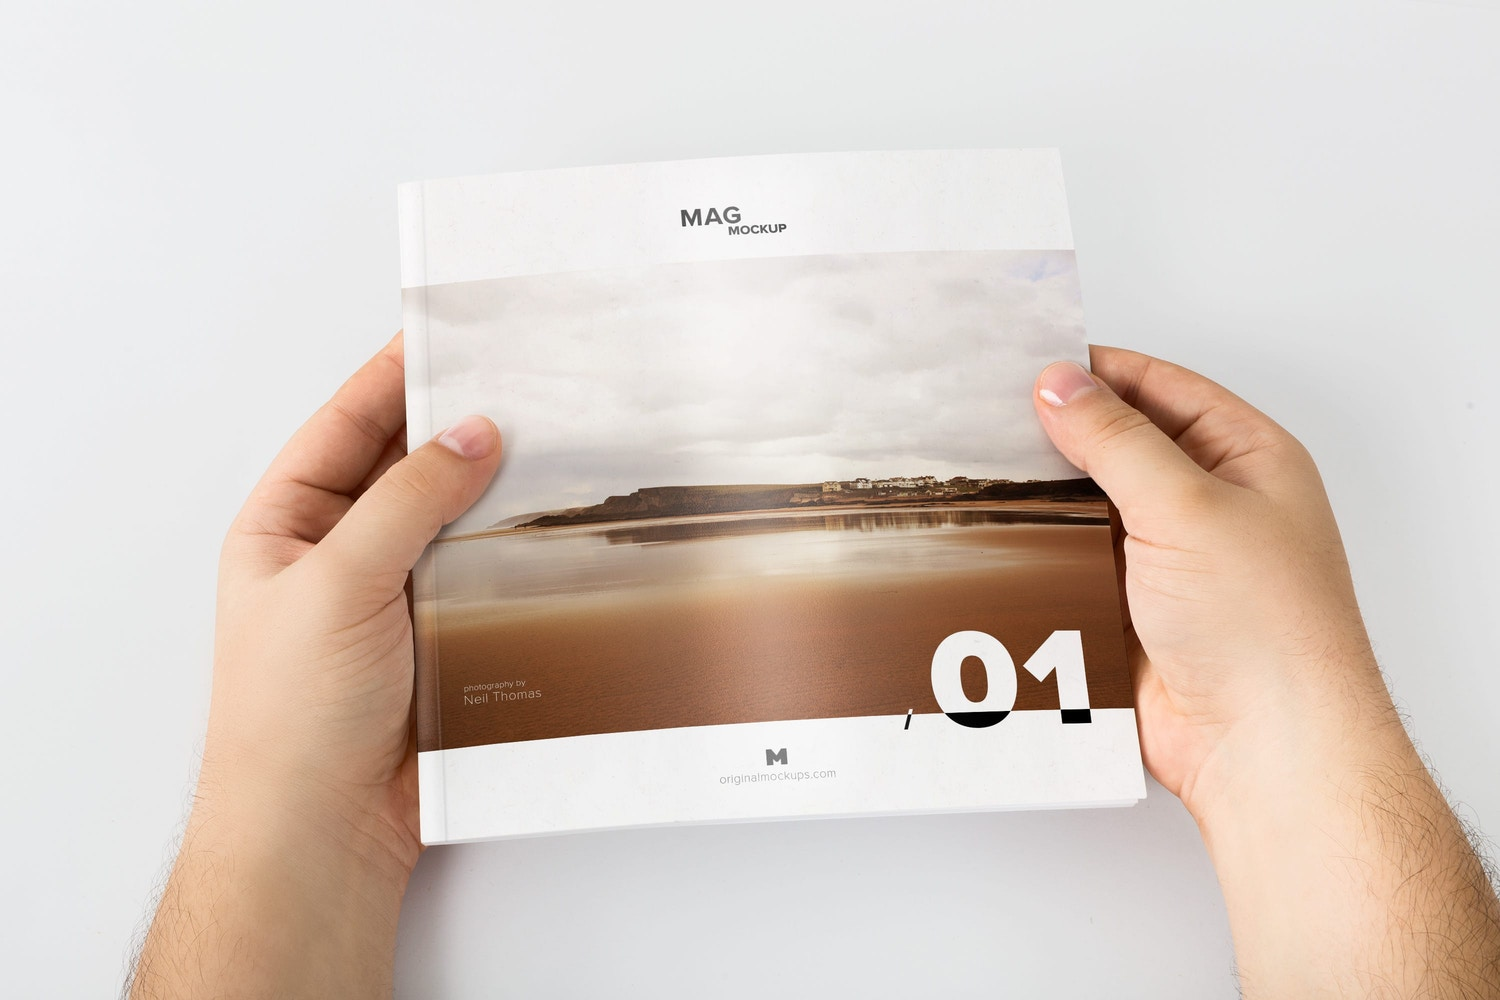 Holding Closed Square Magazine Mockup 02 by Original Mockups on Original Mockups